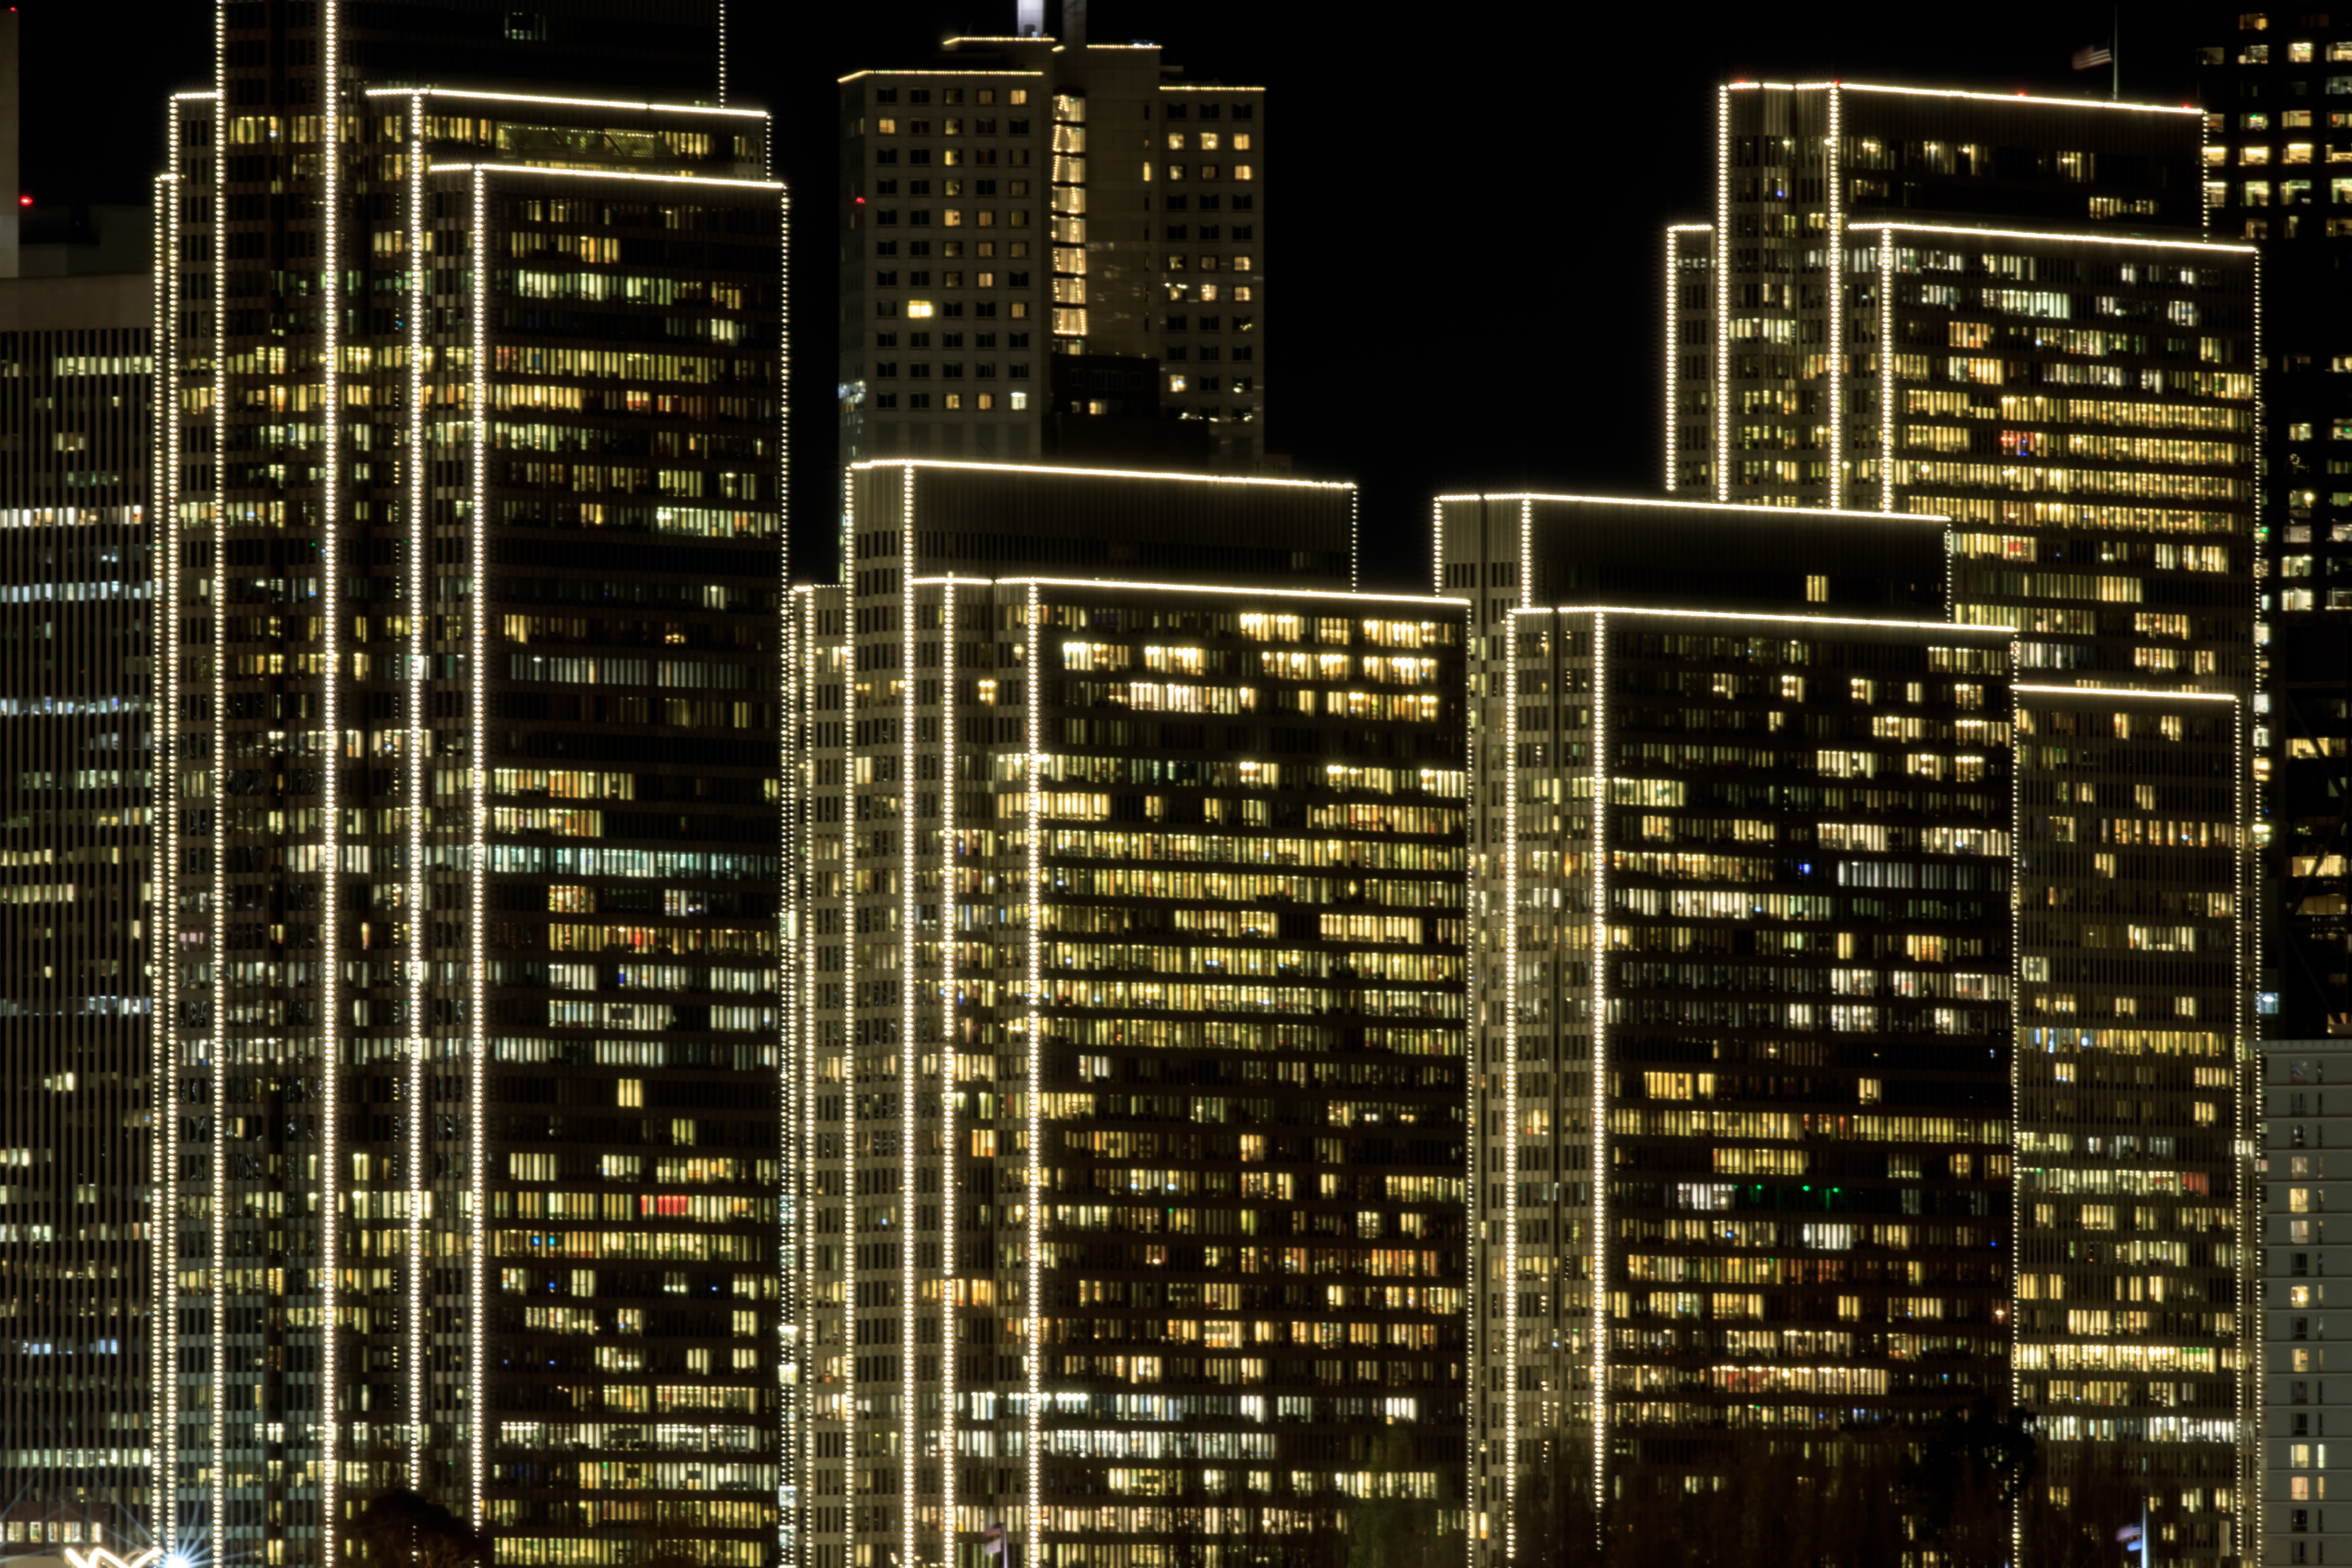 Tall rectangular buildings at night with white lights going up and down the sides of the buildings.